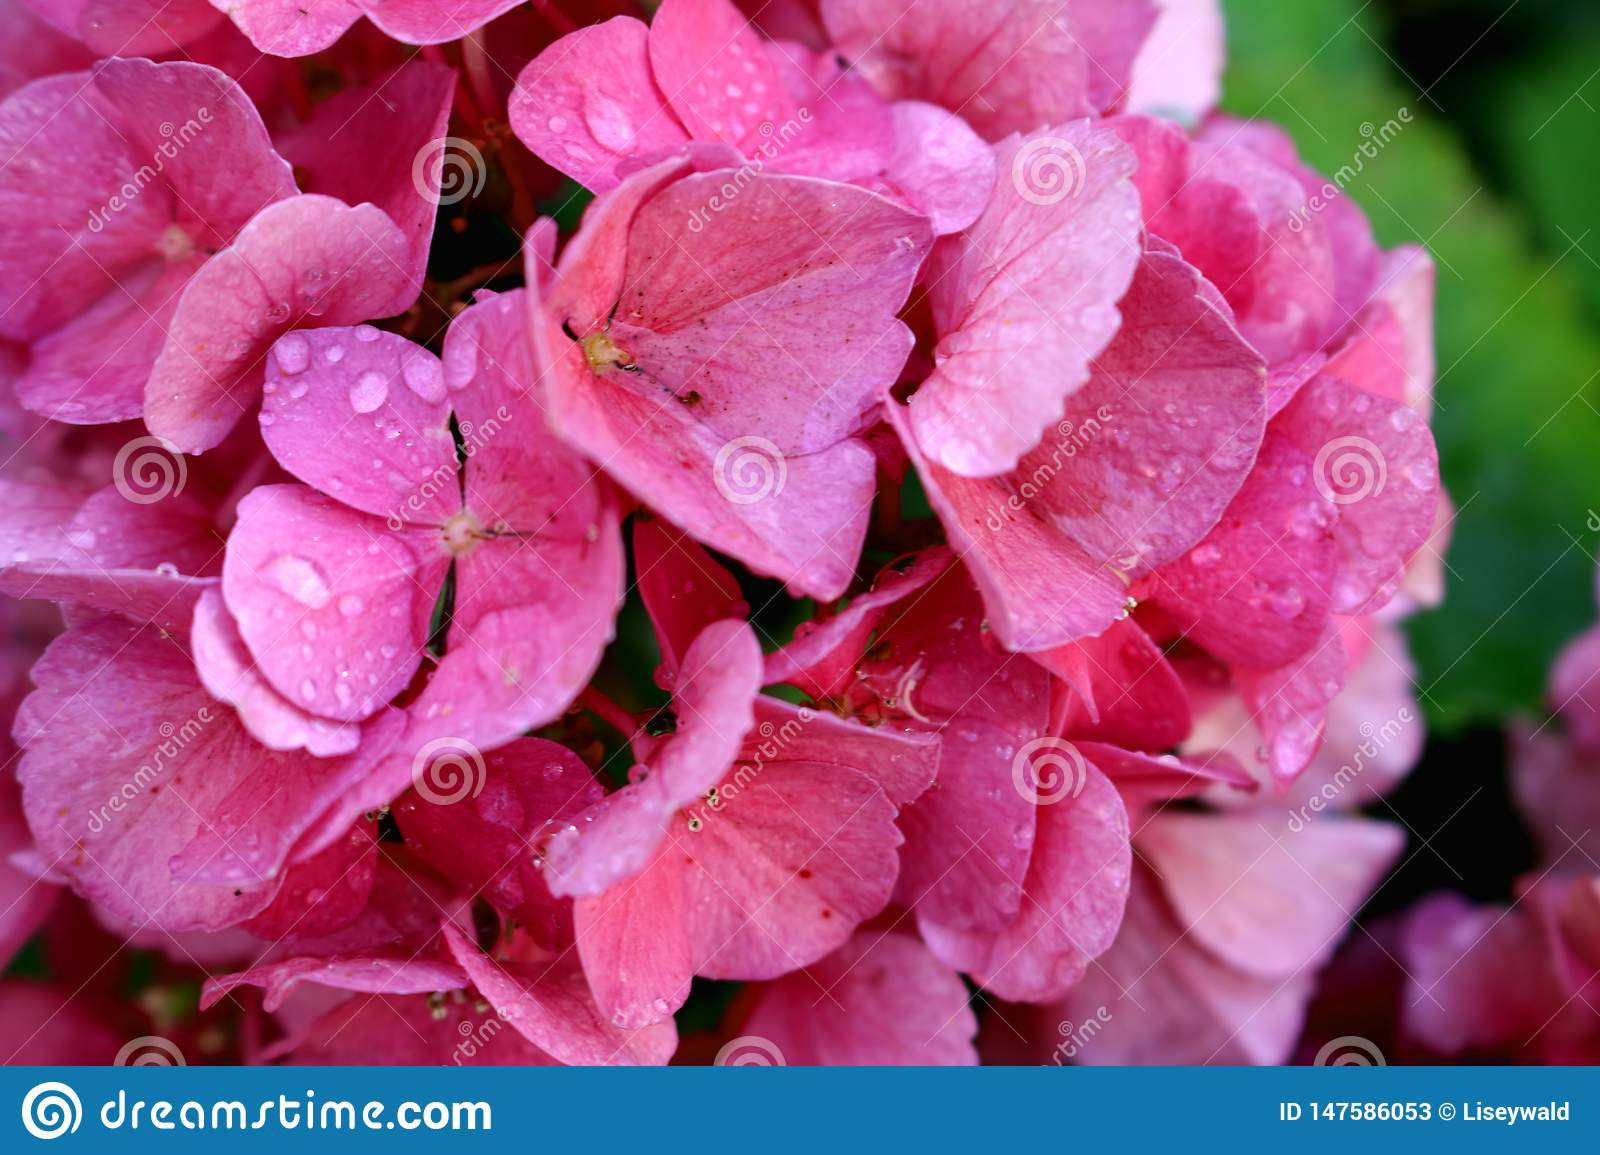 Pink hortensia blossoms with water drops and green background